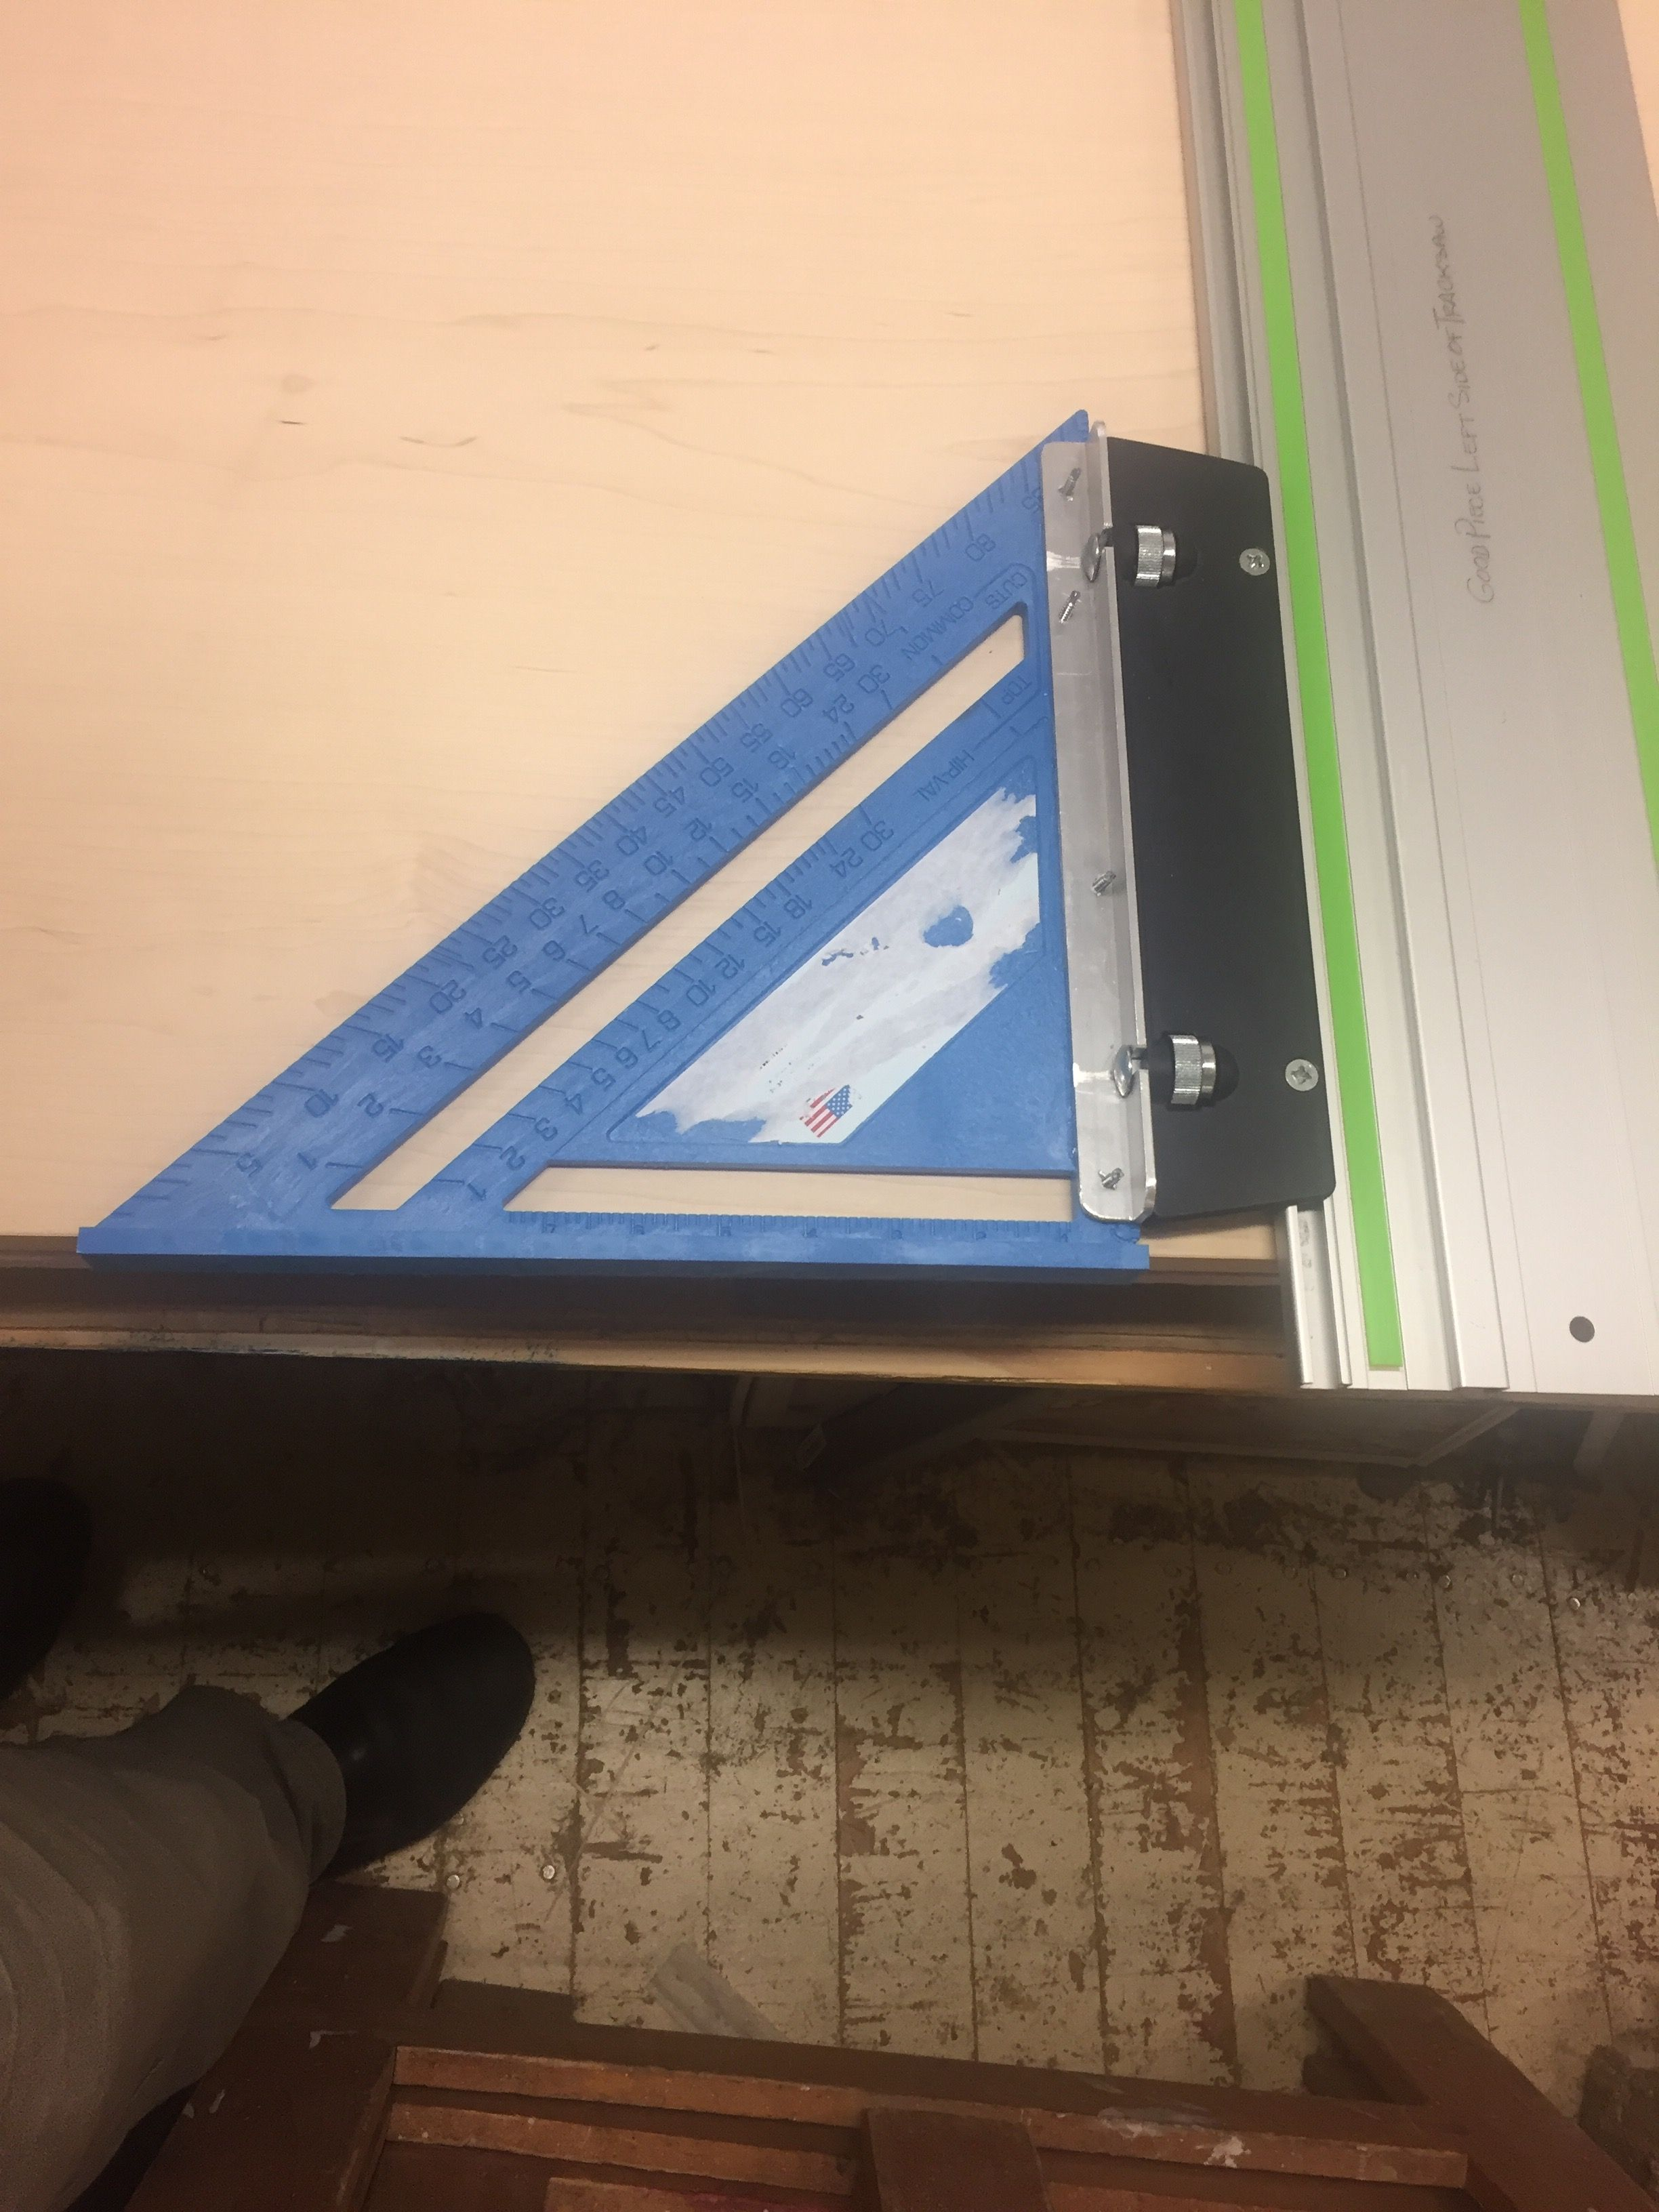 My Festool track saw speed square. (With images) Festool